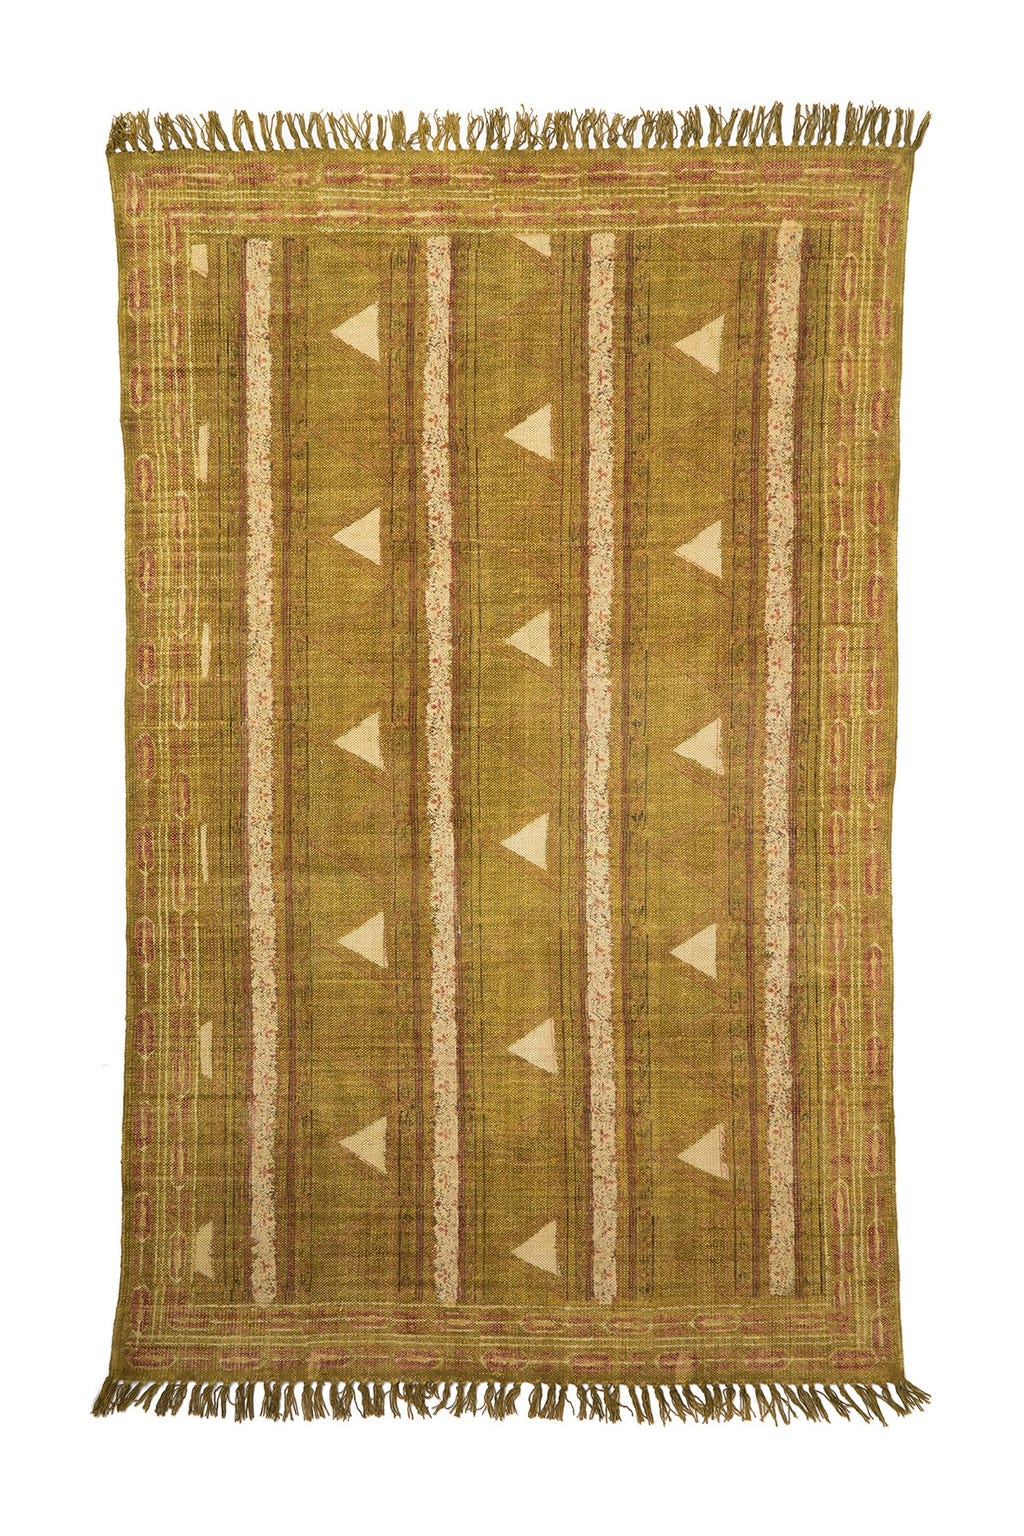 Bohemain Rugs For Affordable Vintage Looking Decor